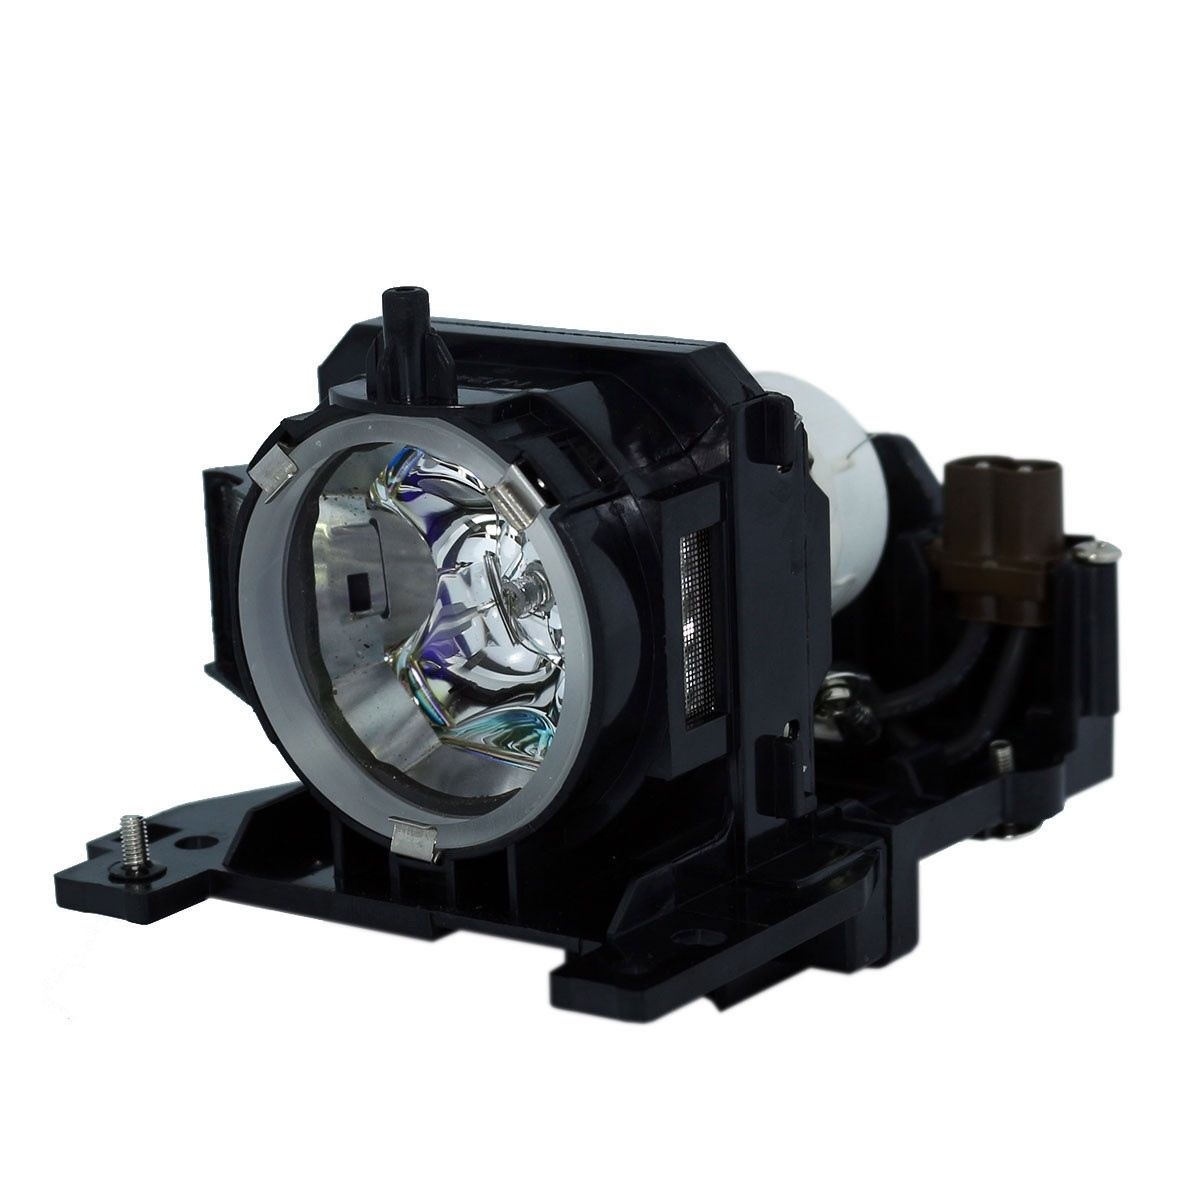 Projector Lamp Bulb DT00911 for HITACHI CP-X201 CP-X306 CP-X401 CP-X450 ED-X31 CP-X301 ED-X33 CP-WX410 CP-X206 With Housing